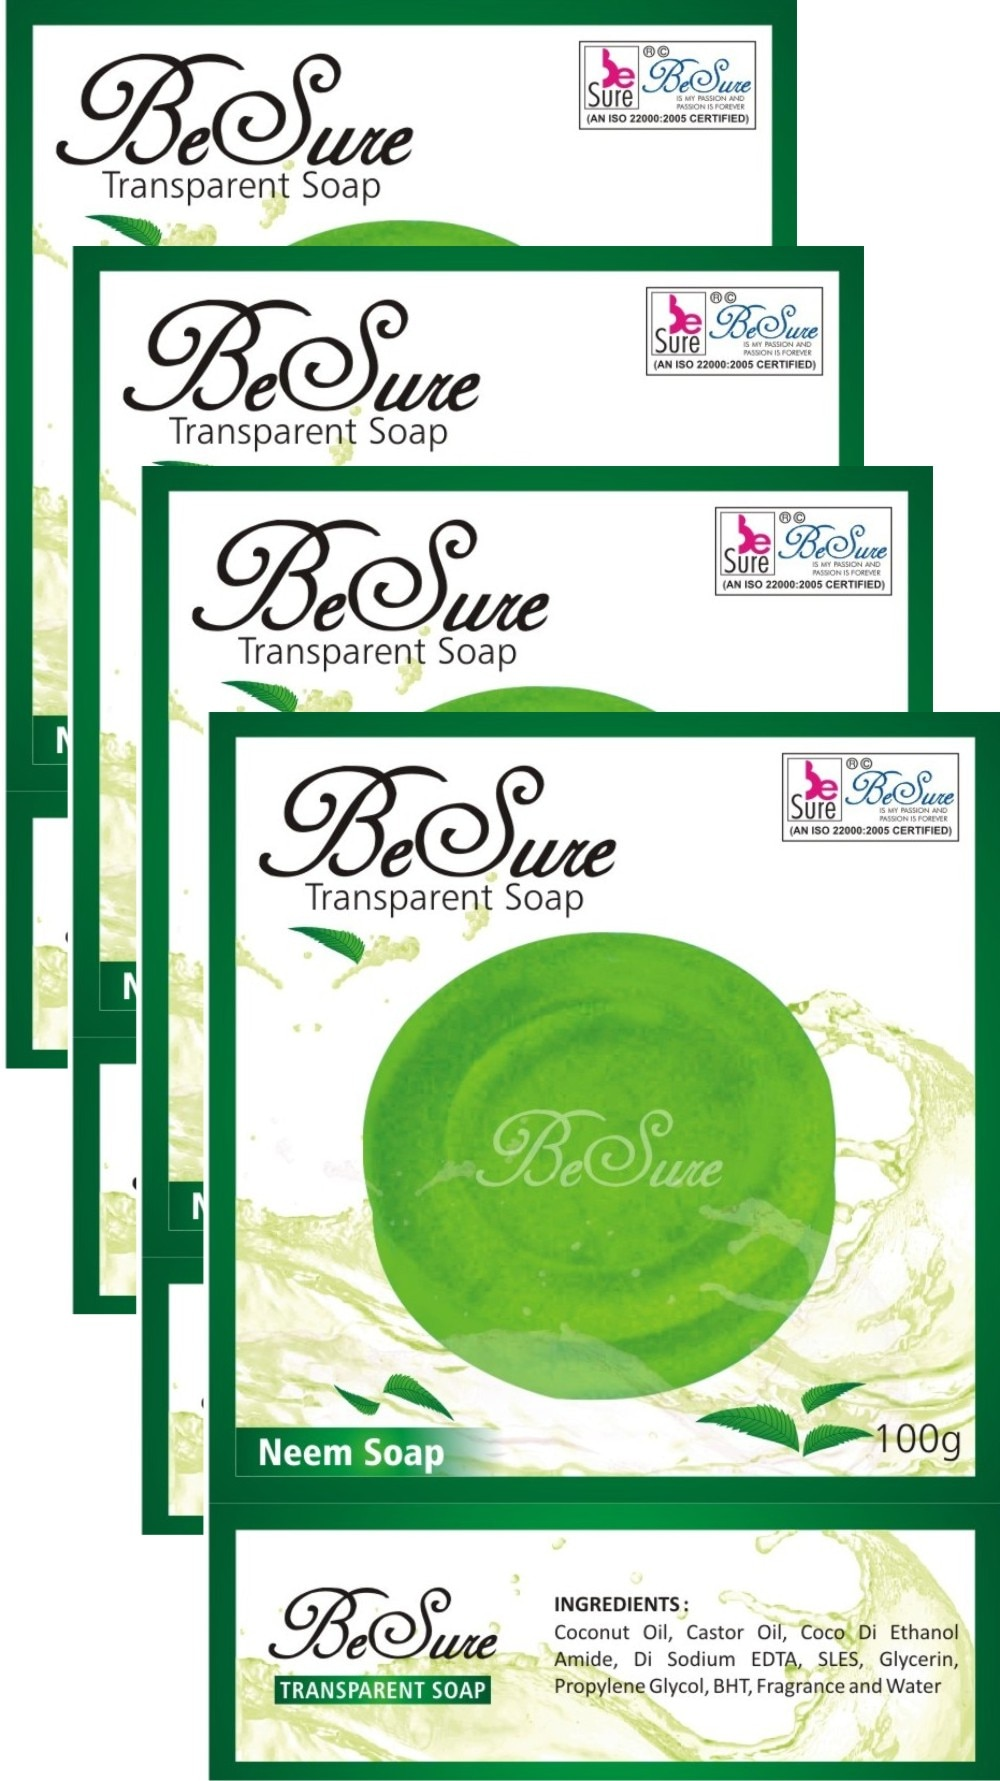 Best Soap Best Transparent Soap Best Gentle Soap Best Neem Soap Best Lemon Soap  Glycerin is thought to be a humectant, which means that it can attract moisture. Due to this quality, glycerin soaps attract moisture to your skin and keep it locked in. This provides your skin constant hydration. Unlike some soaps that dry your skin out and make it feel tight and even flaky, glycerin soap keeps your skin feeling more hydrated for several hours after you use it. Using glycerin soap on a regular basis can help your skin become softer and suppler.  Click: http://aloeveraindia.com/product.php?page=13